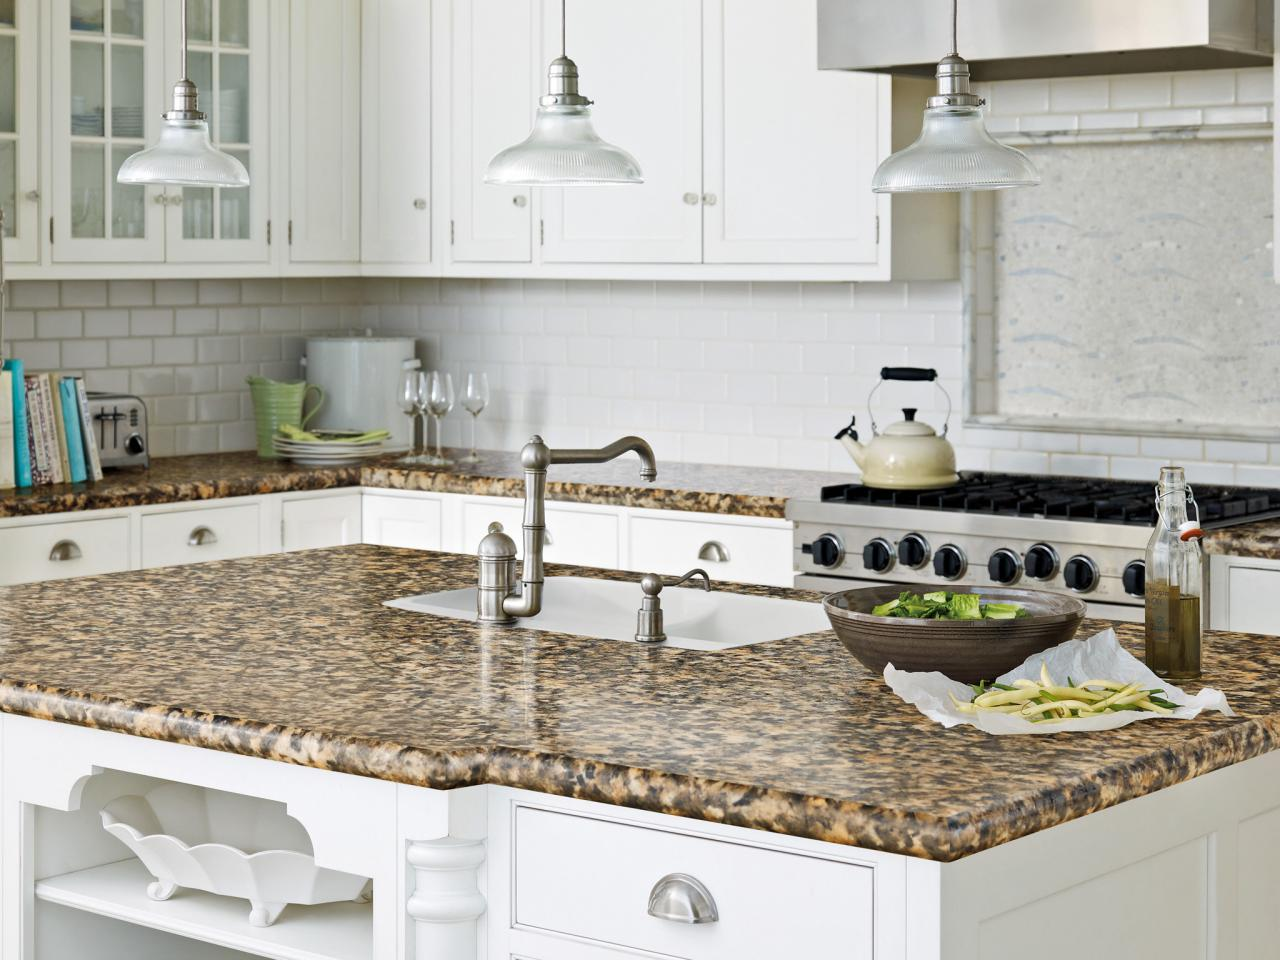 Laminate kitchen countertops pictures ideas from hgtv for Kitchen countertops